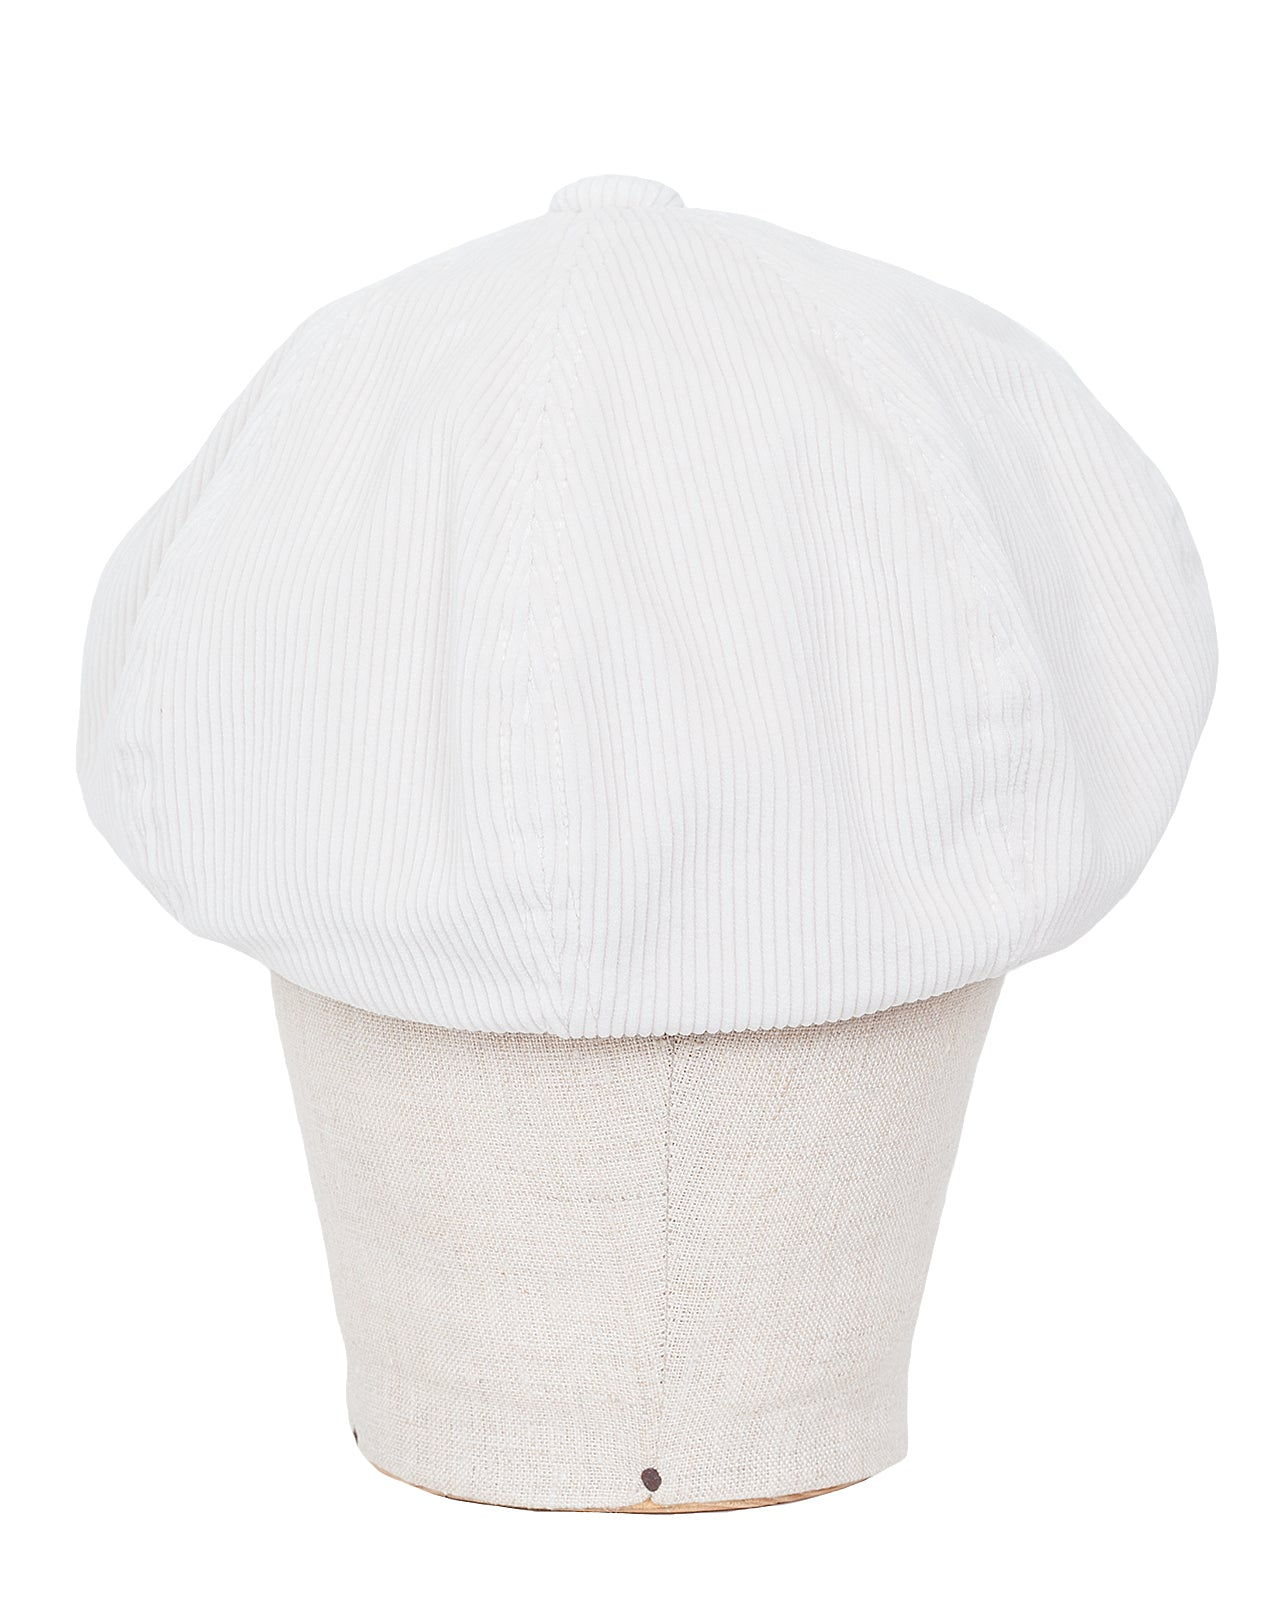 By Glad Hand, Brother Union Casquette, White